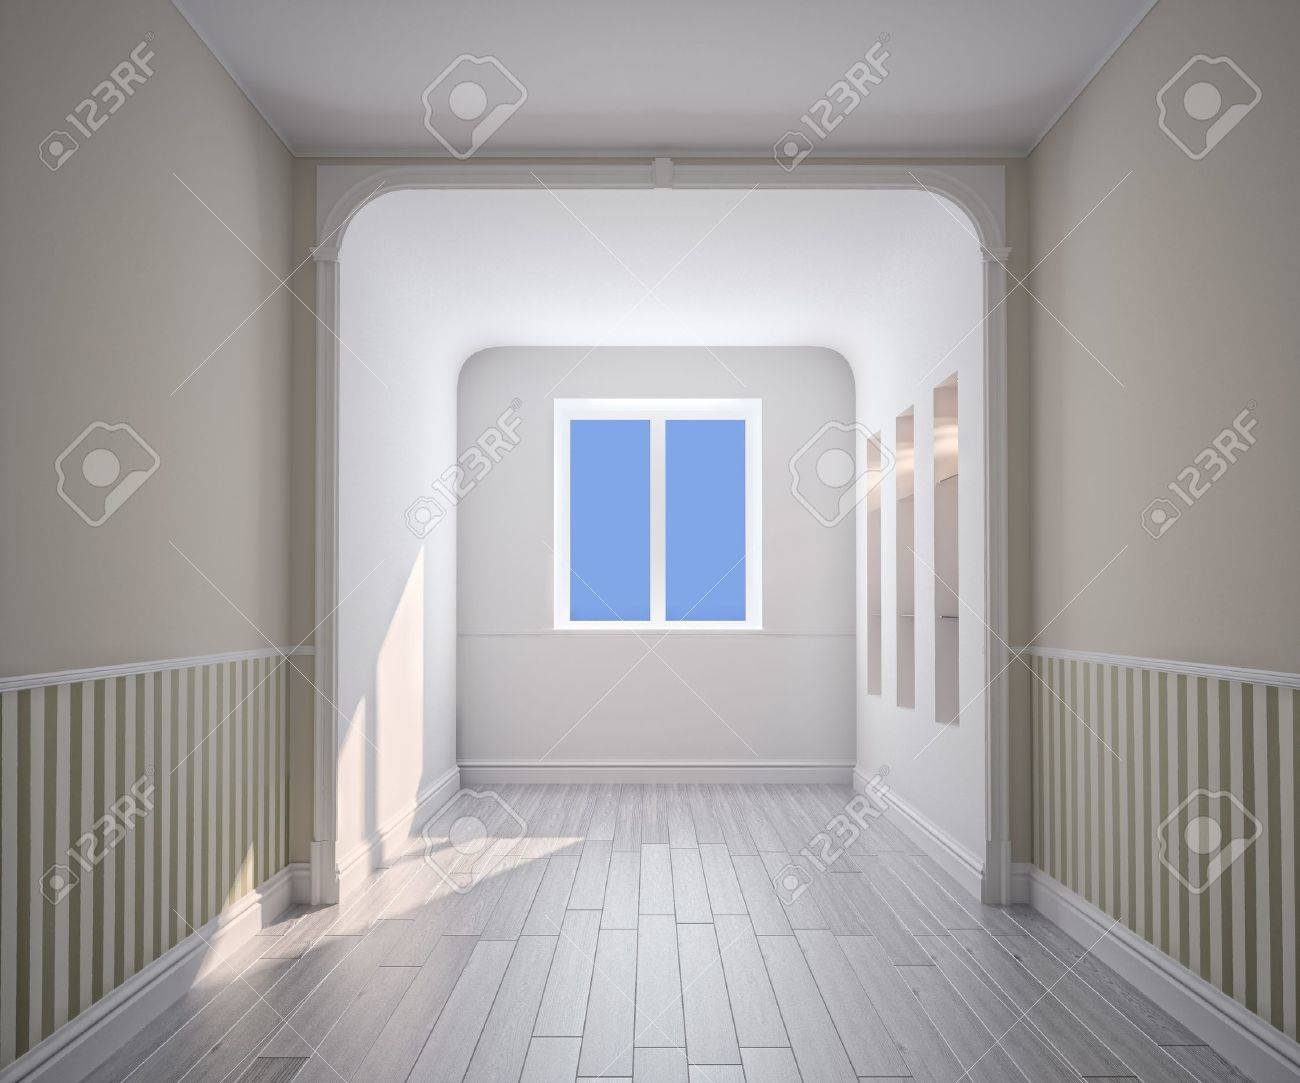 empty room interior (computer generated image) Stock Photo - 9862993